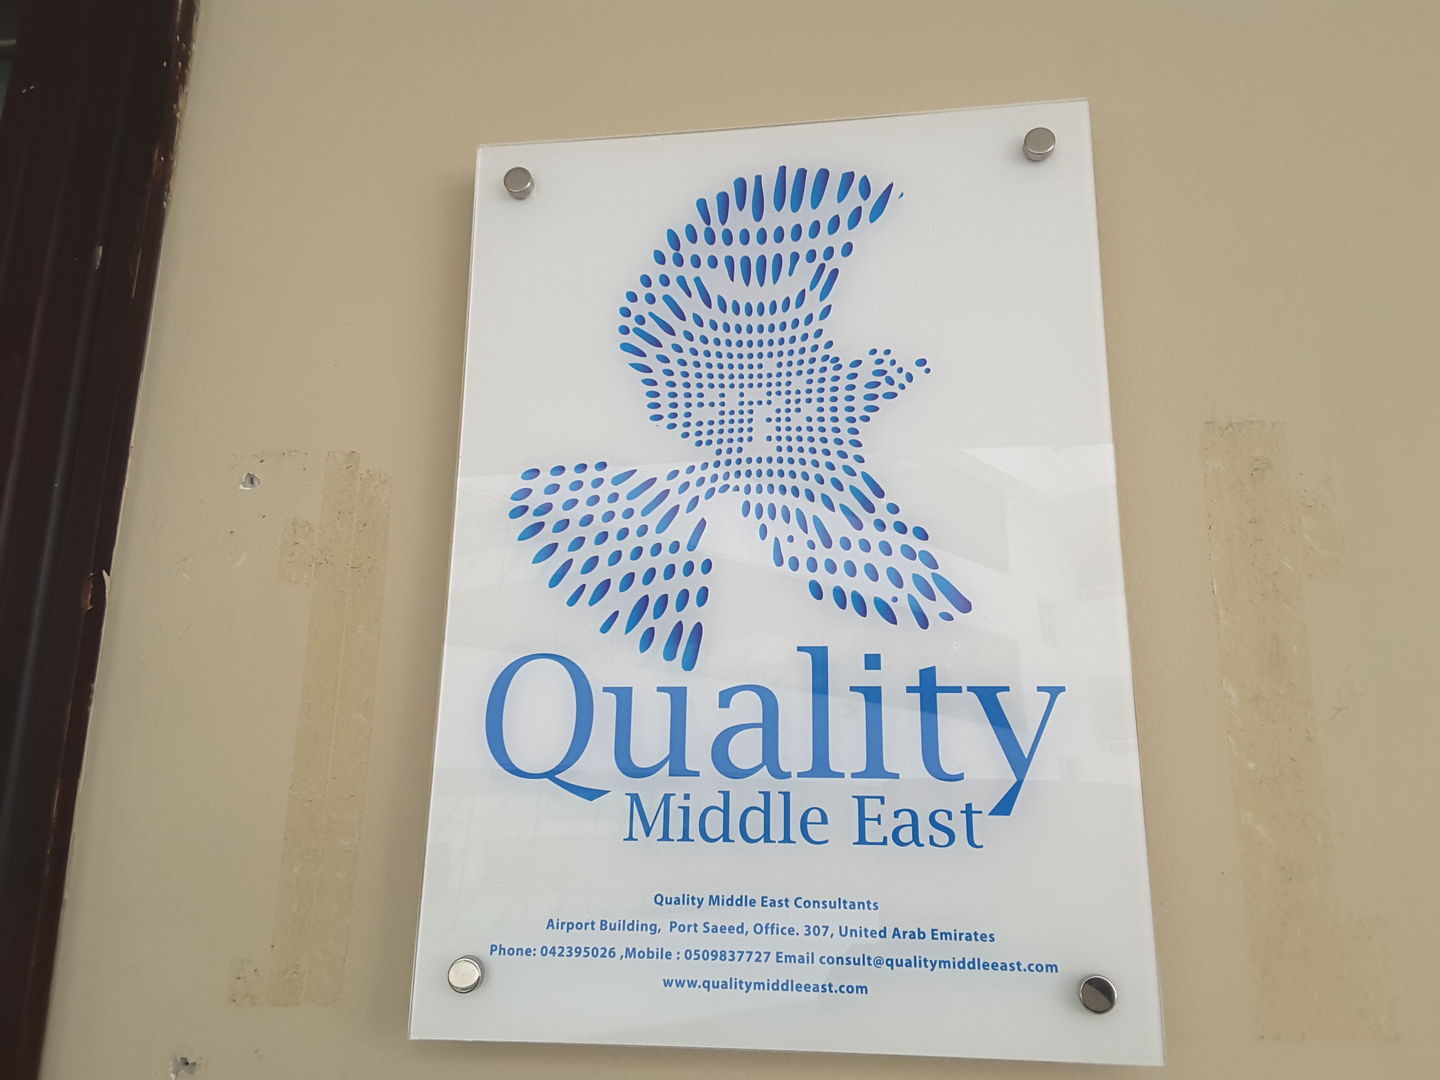 HiDubai-business-quality-middle-east-consultants-b2b-services-business-consultation-services-port-saeed-dubai-2